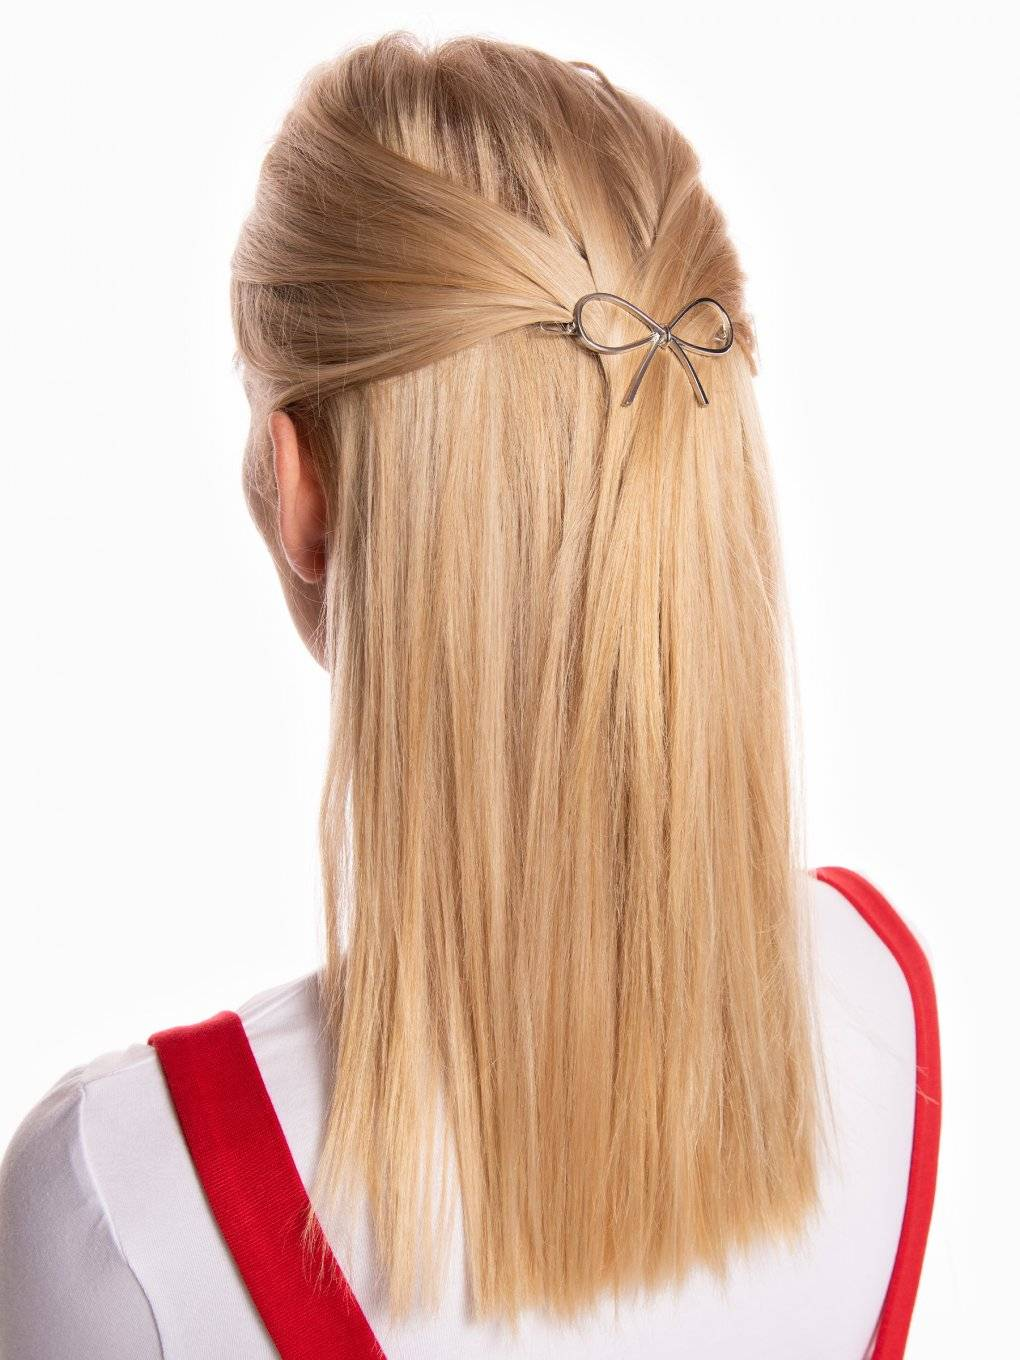 Bow hairgrip